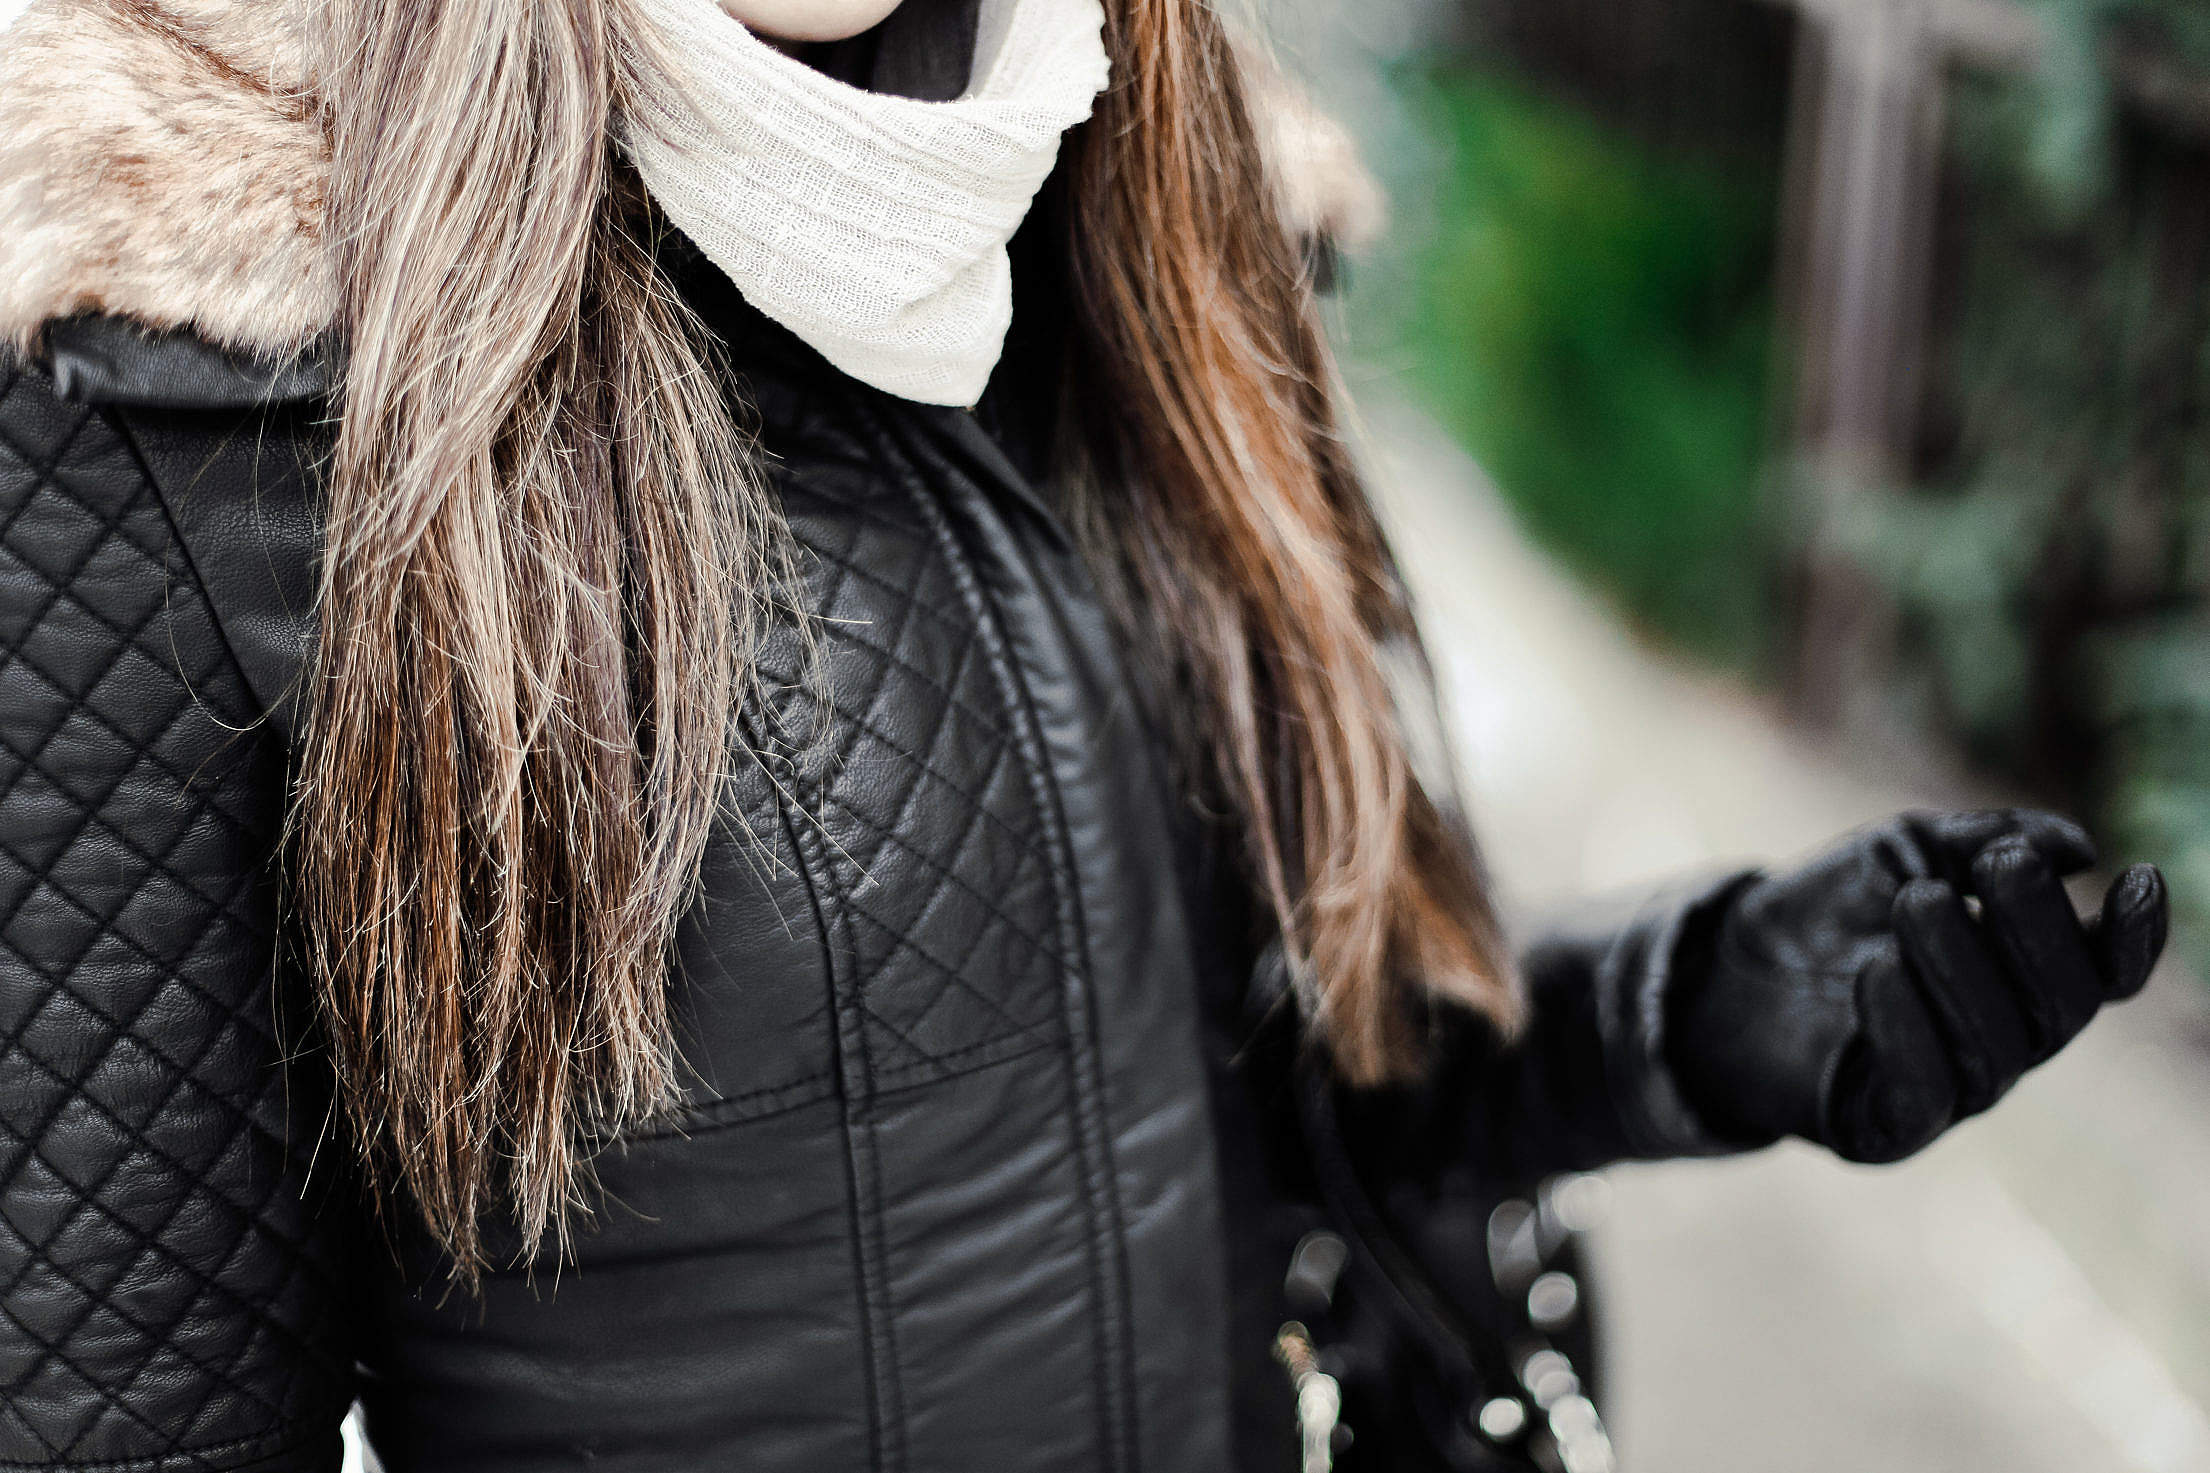 Girl Wearing Leather Jacket Free Stock Photo